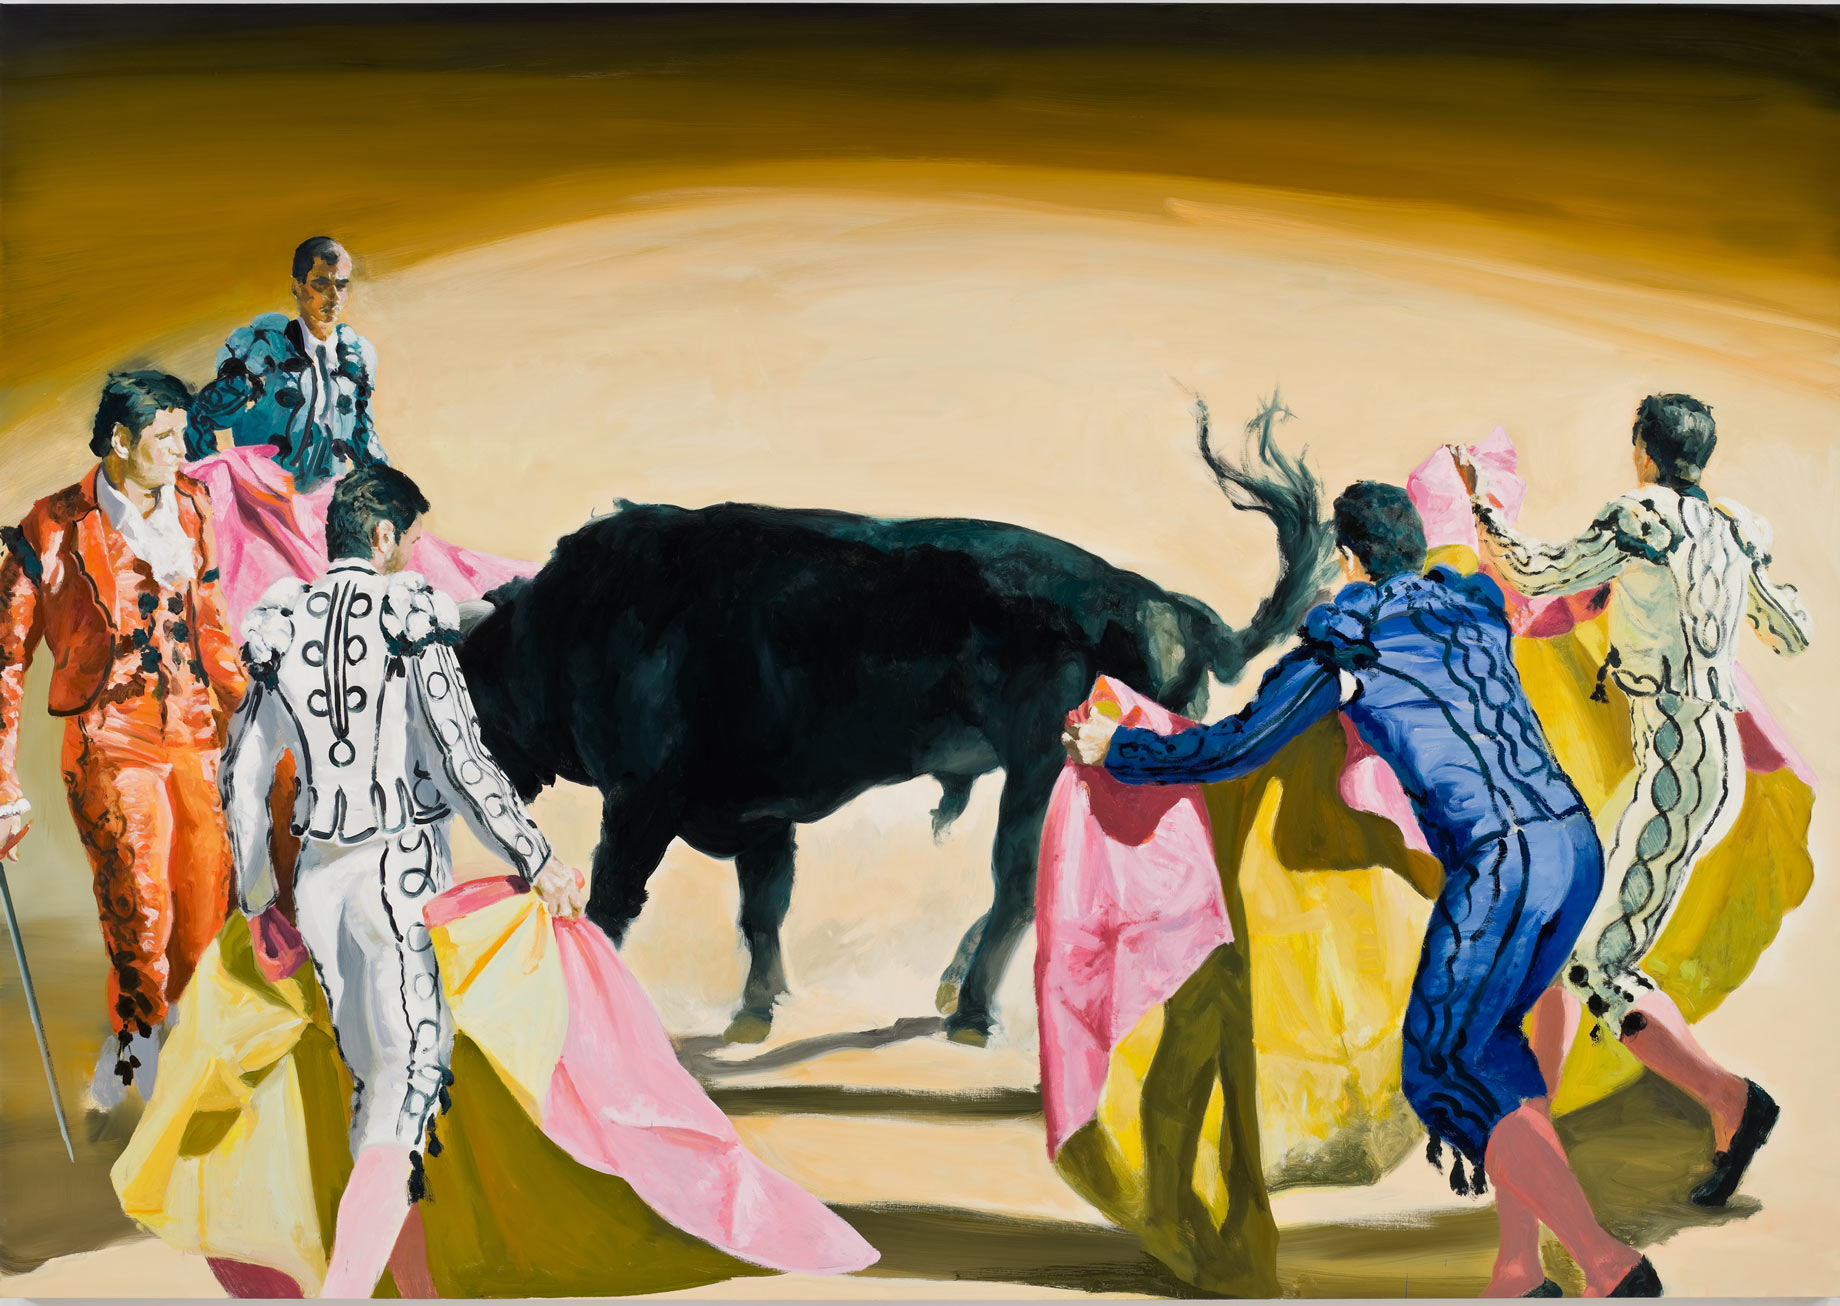 Corrida in Ronda #7, 2008. Oil on Linen. 84 x 120 in. (213 x 305 cm.)